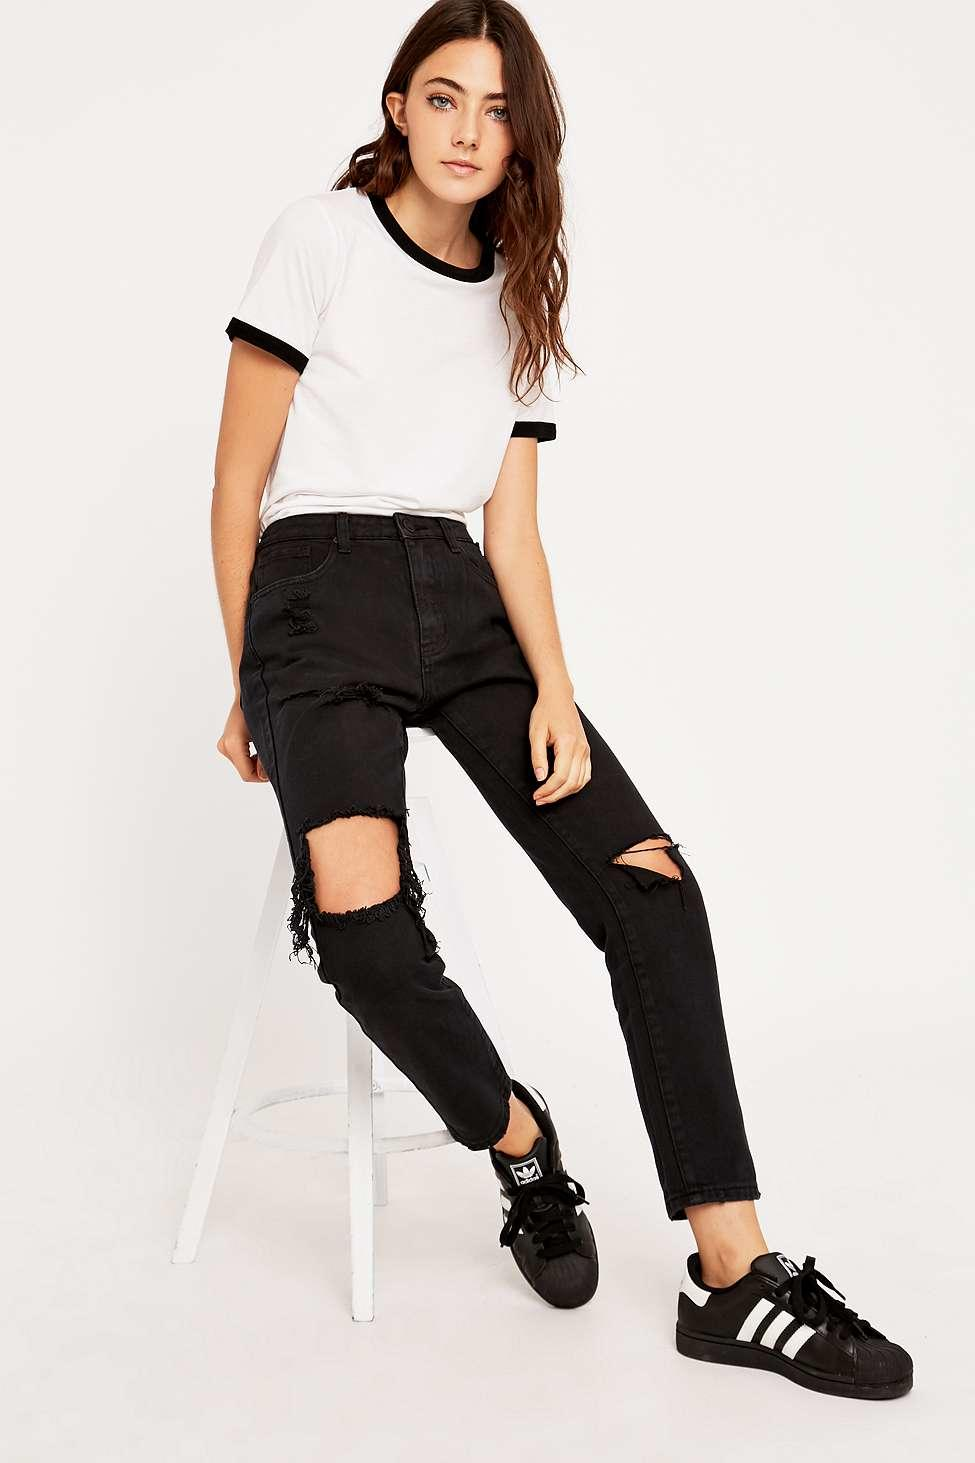 UNIF Romeo Black Jeans - Urban Outfitters from Urban Outfitters